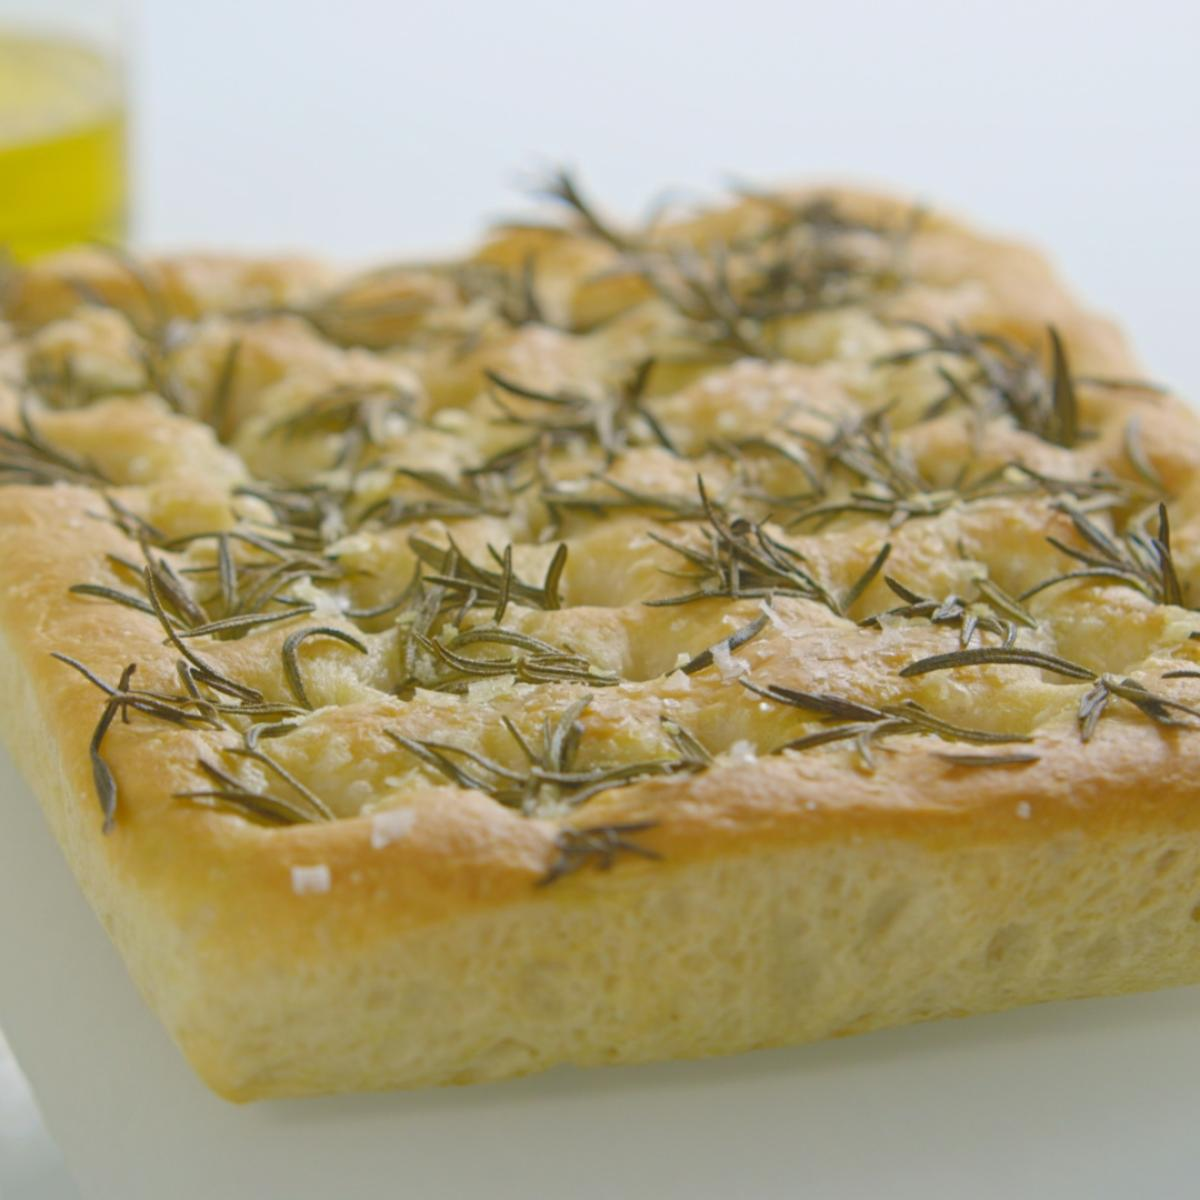 A picture of Delia's Focaccia recipe